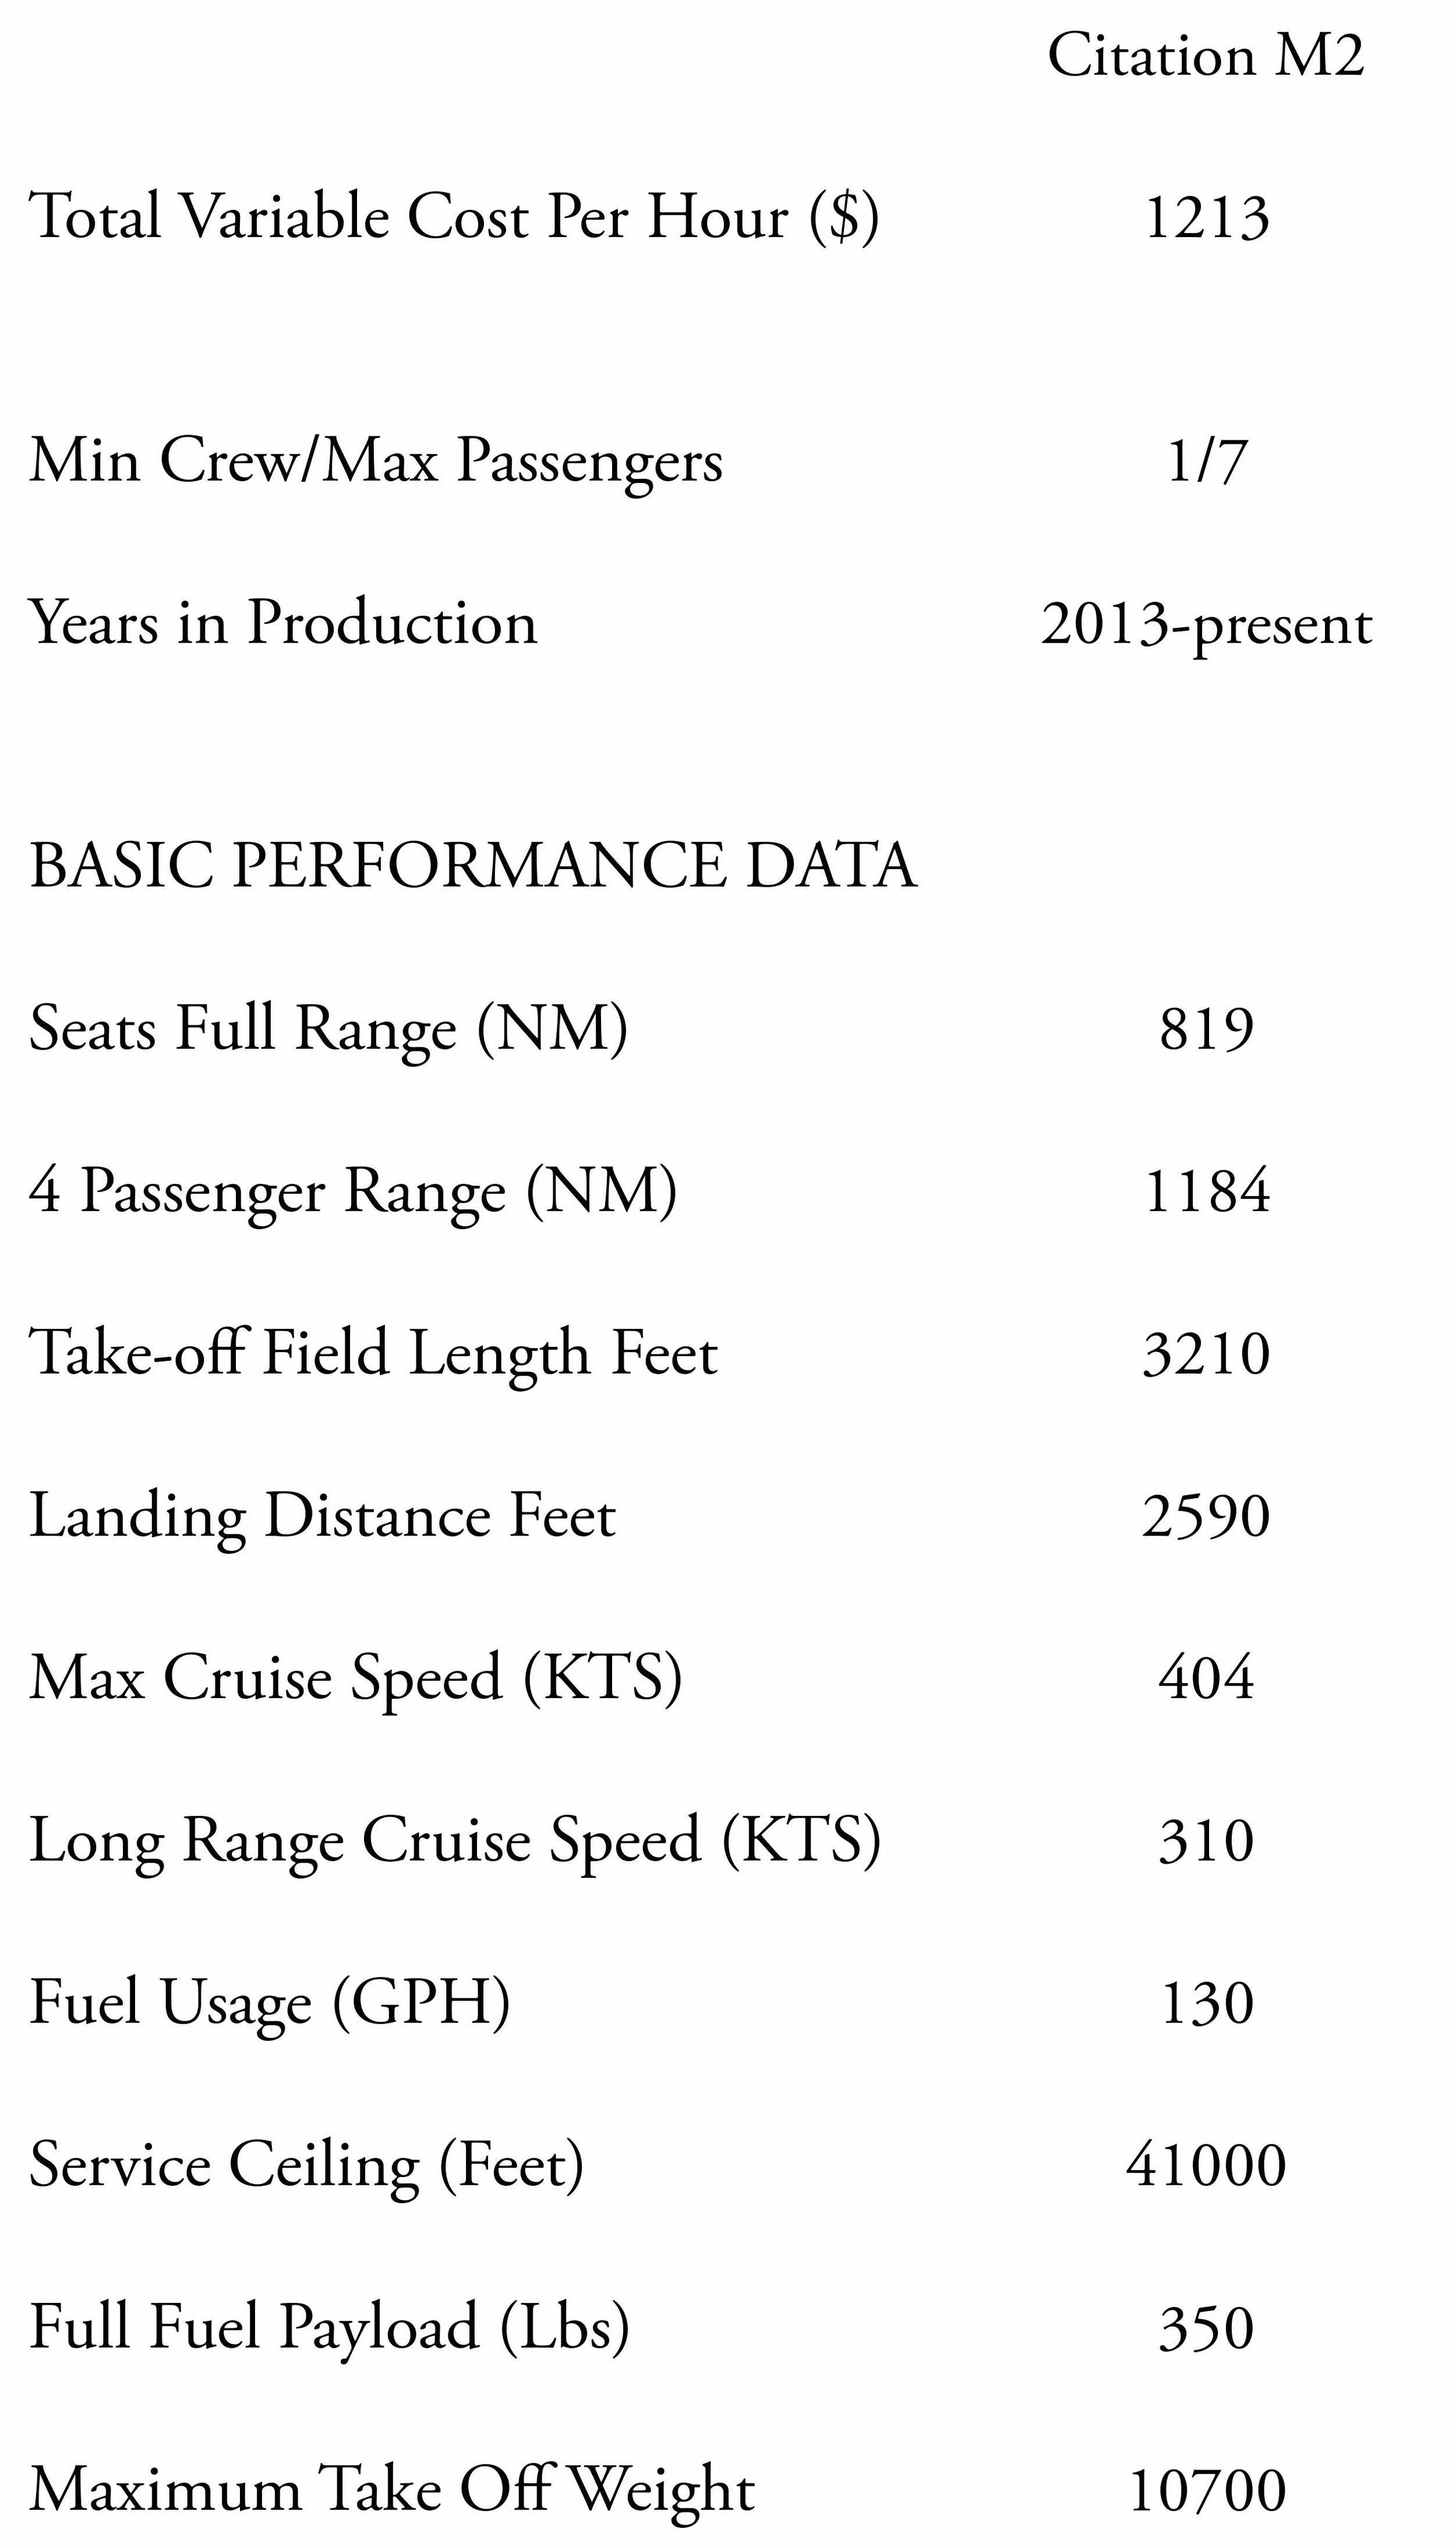 Citation M2 Performance Specs, Ownership costs, Variable costs, Cost per hour, Years in production, Range, Max Cruise Speed, Fuel Usage